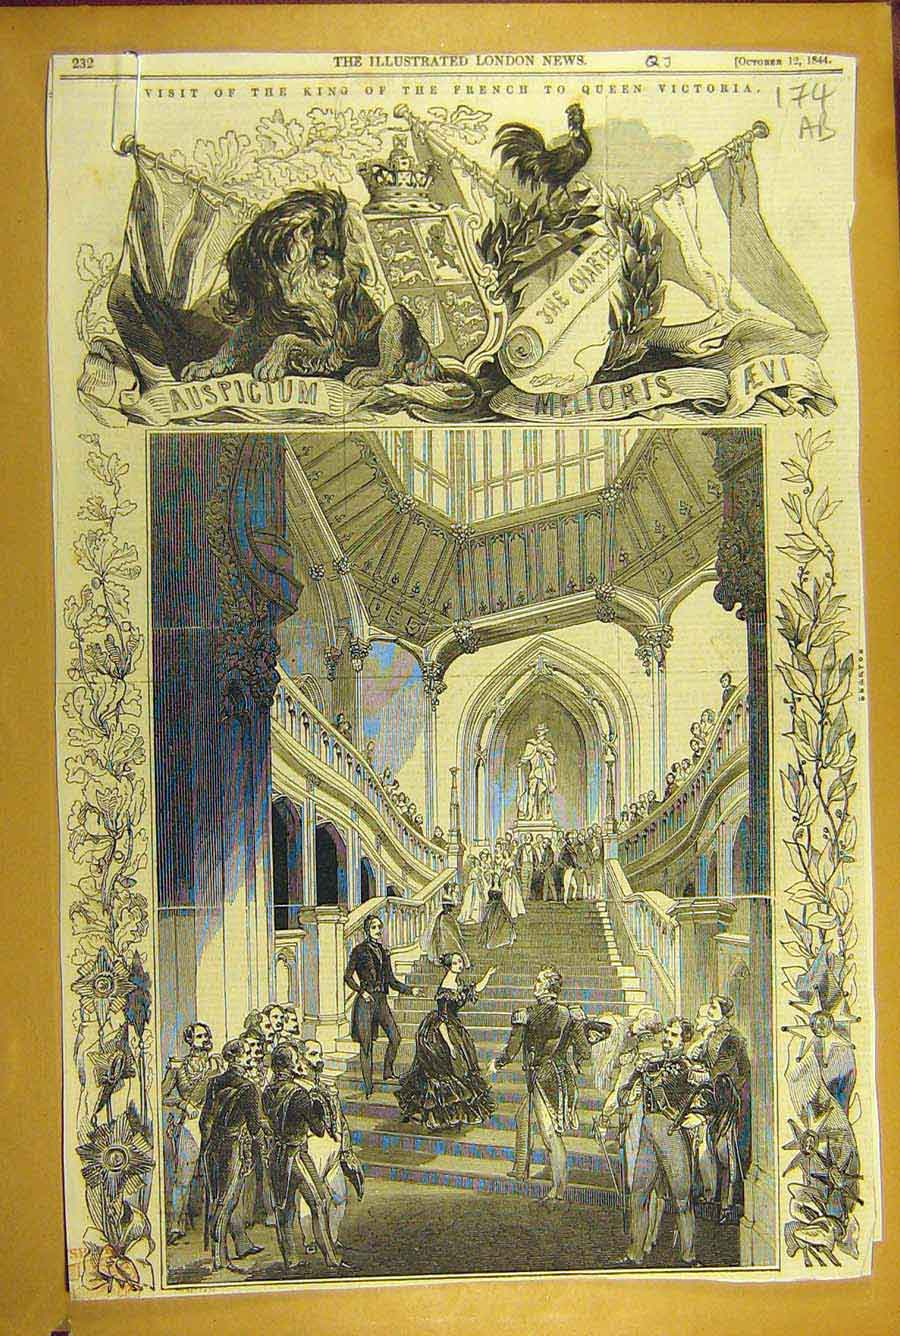 Print 1844 King French Queen Victoria Visit Costume Ball 74A8781 Old Original